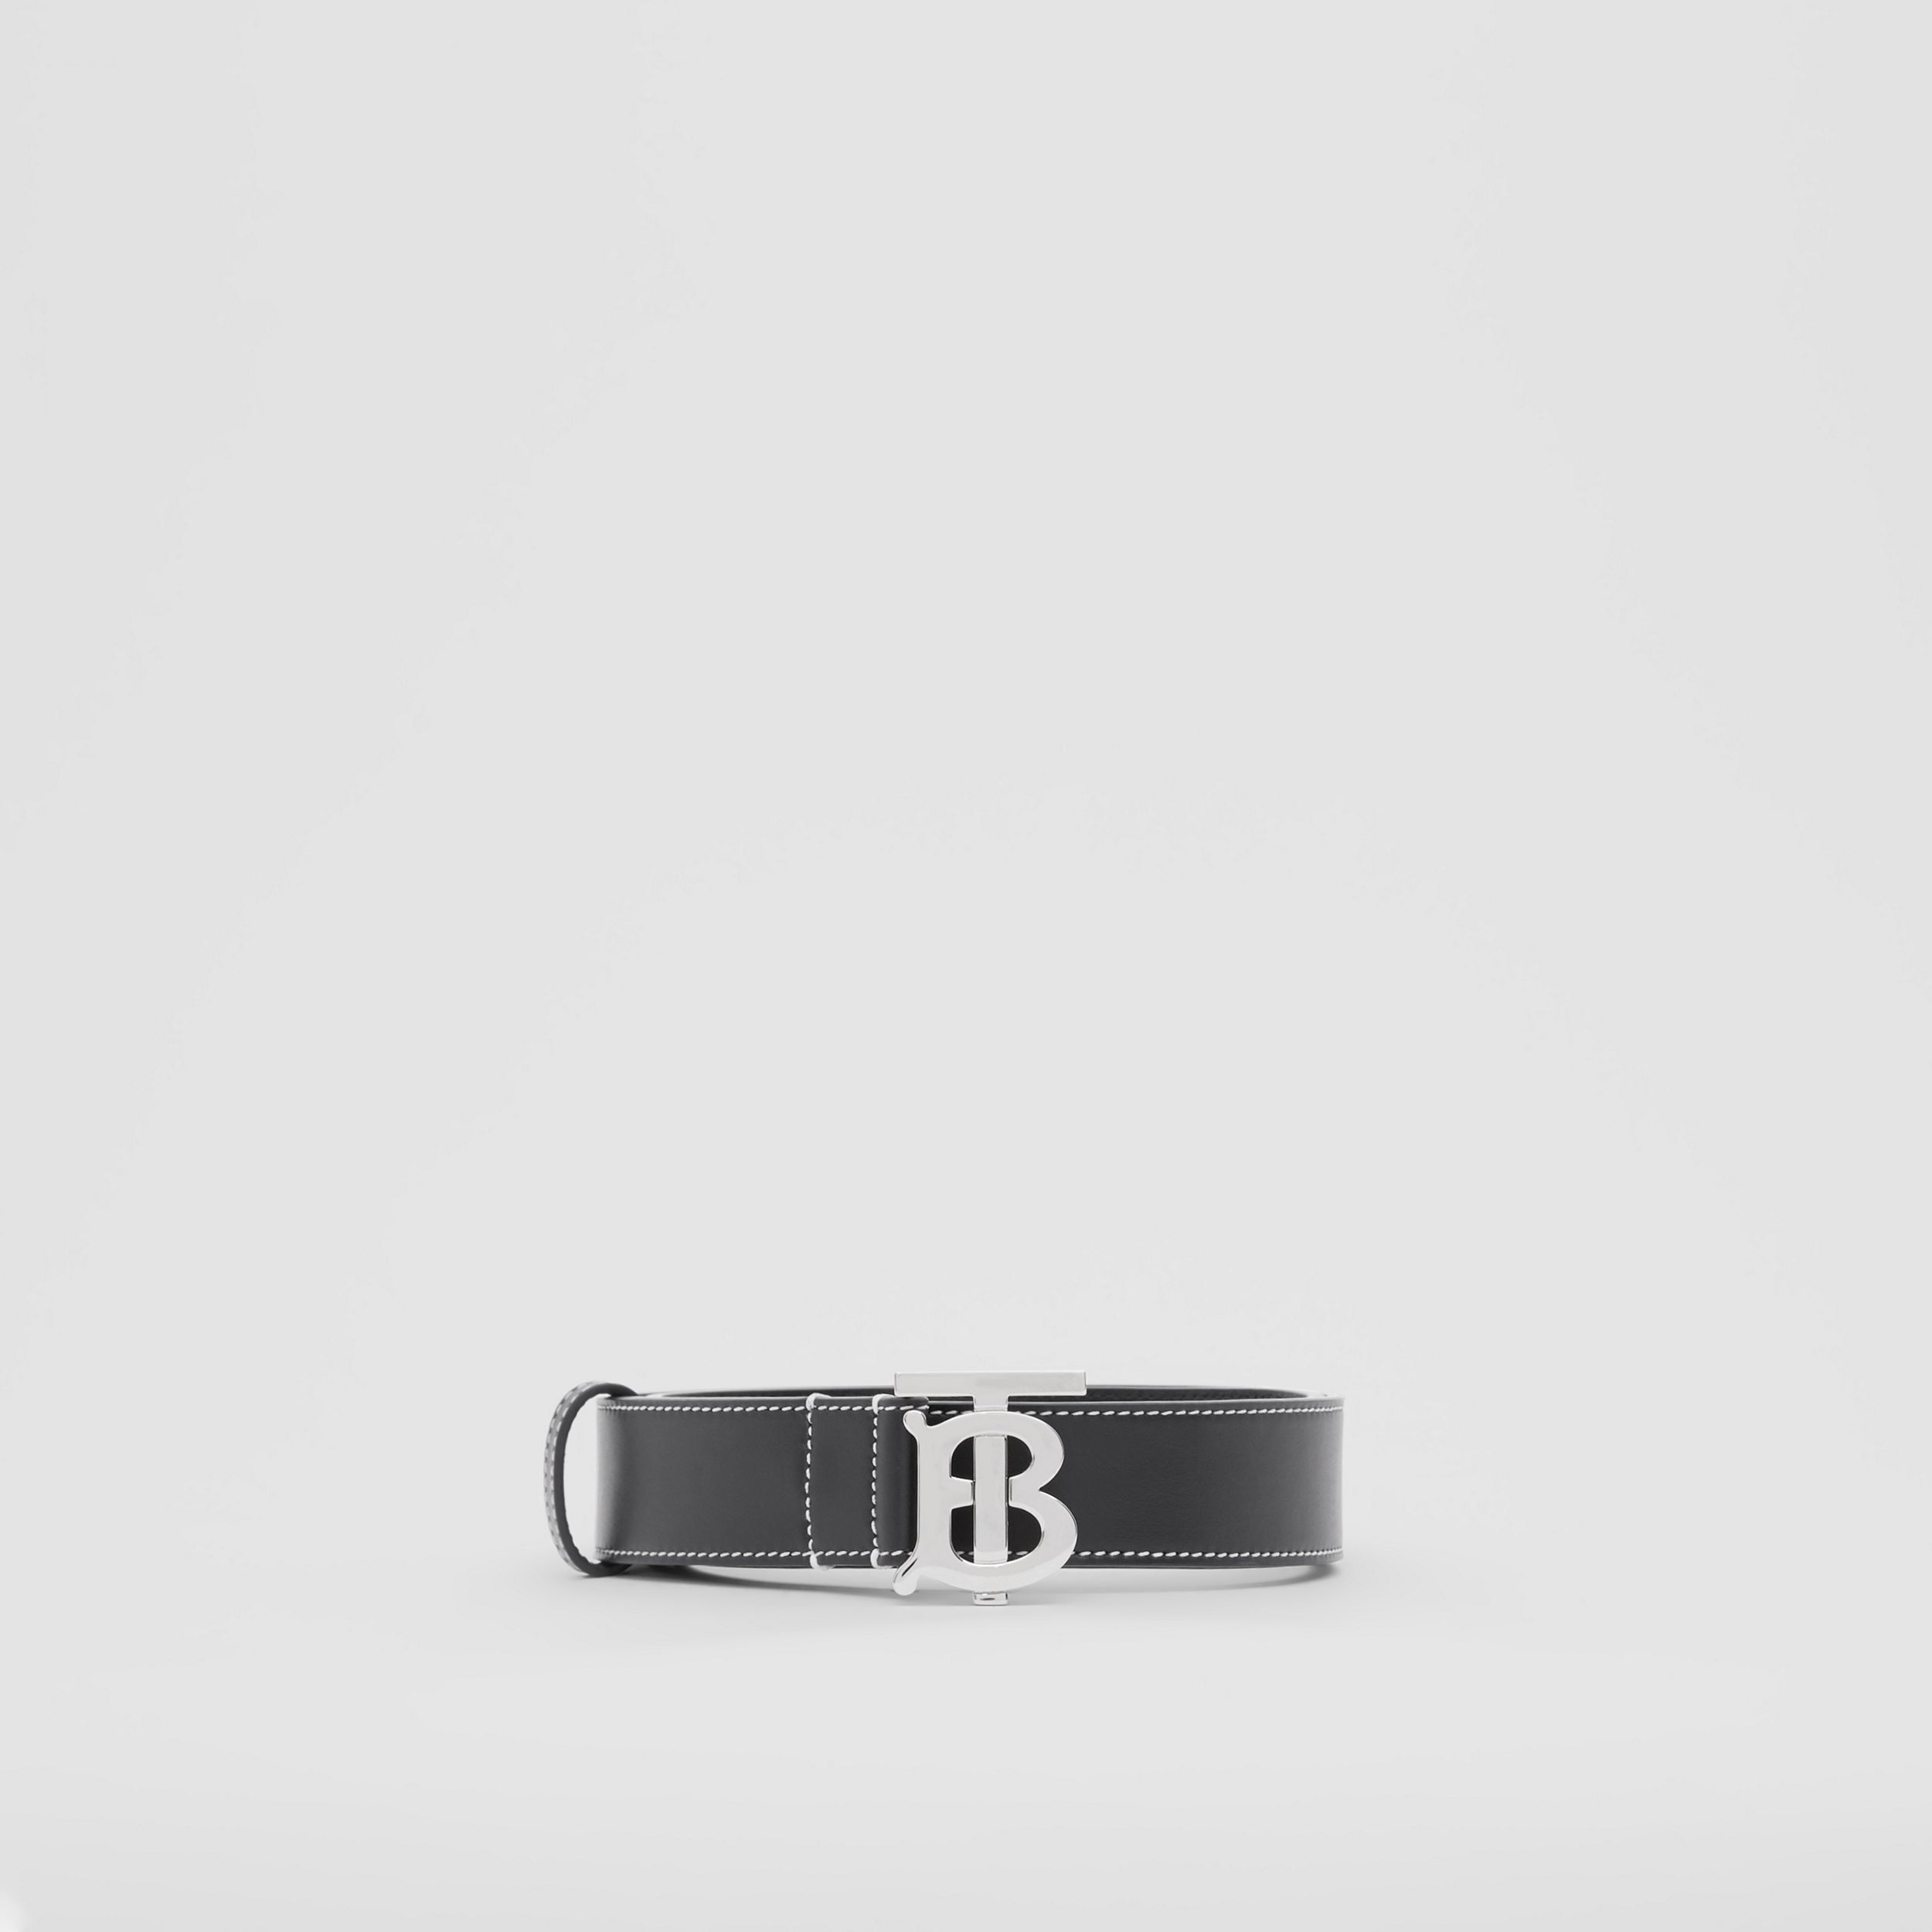 Monogram Motif Topstitched Leather Belt in Black - Men | Burberry Hong Kong S.A.R. - 4